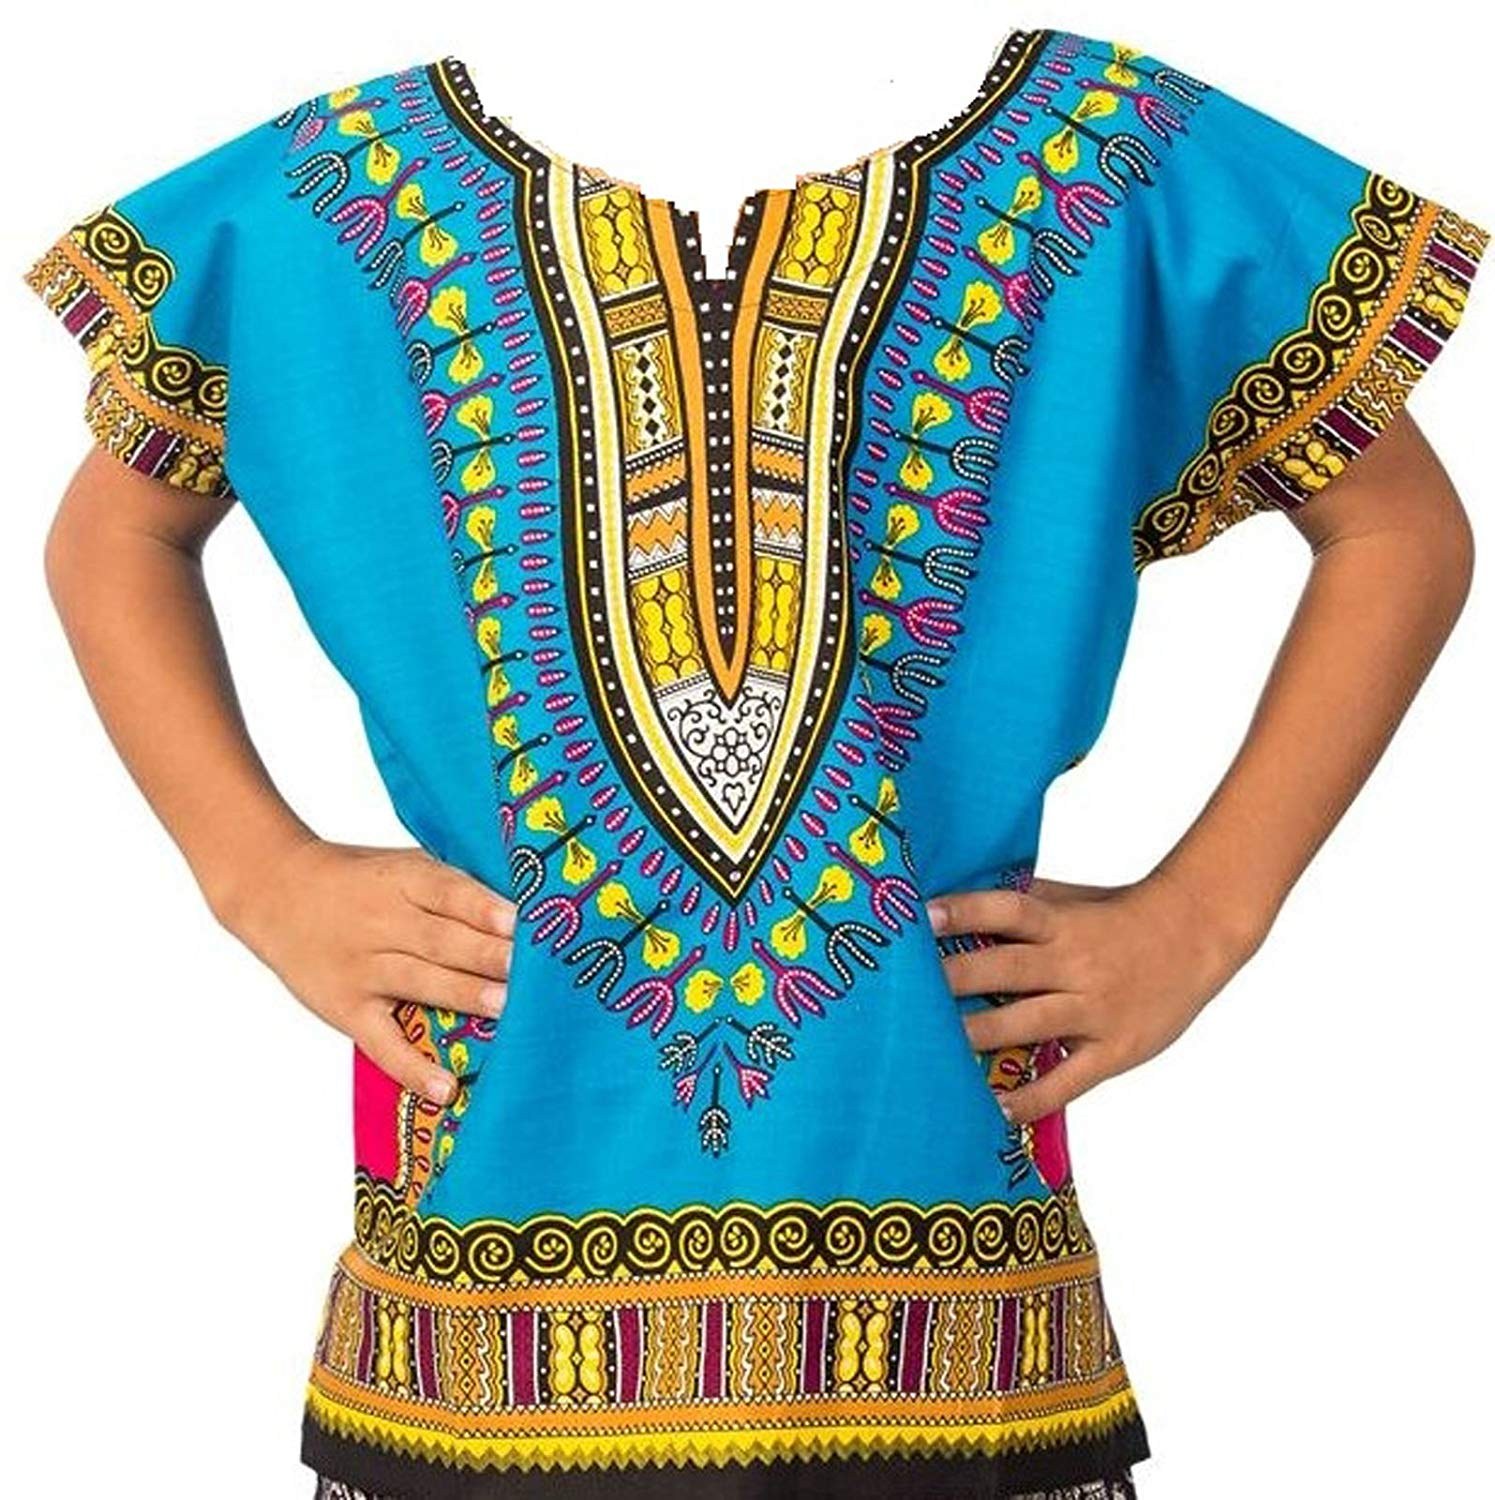 Decoraapparel Kids Traditional Dashiki Shirt Unisex African Boys Printed Dashiki Girls Blouse One Size - Ufumbuzi - Home